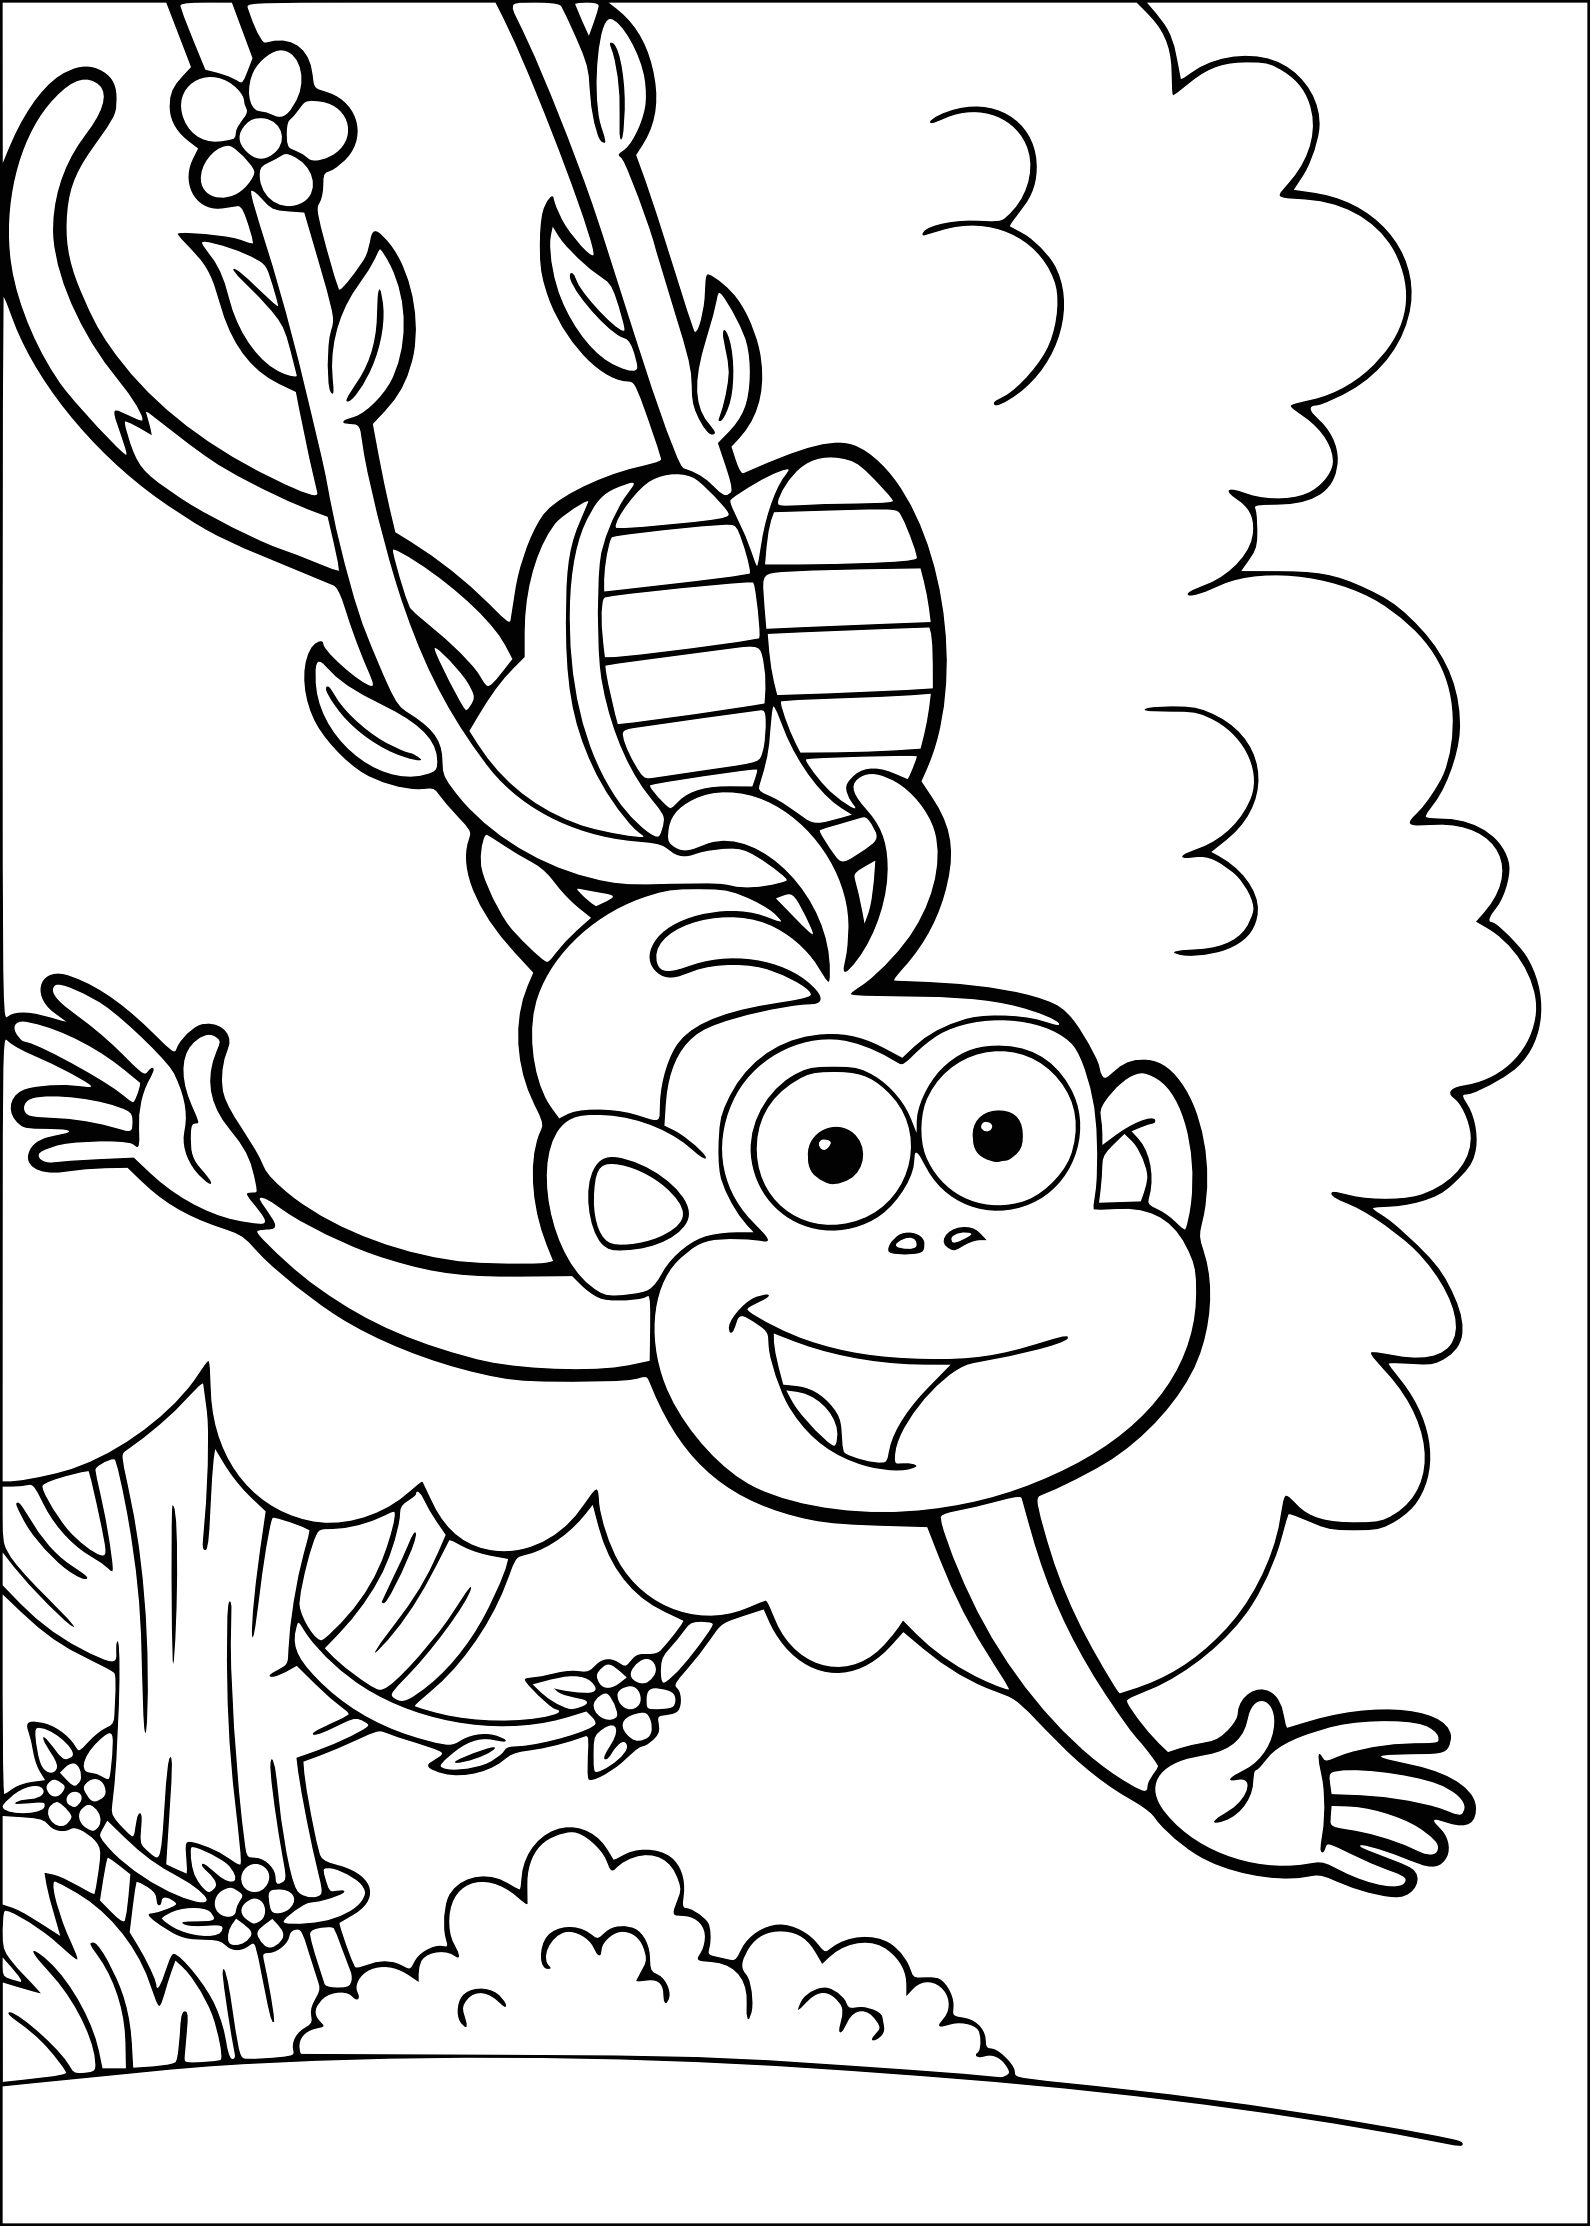 Dora the Explorer and Boots Coloring Pages Boots Dora the Explorer Coloring Page